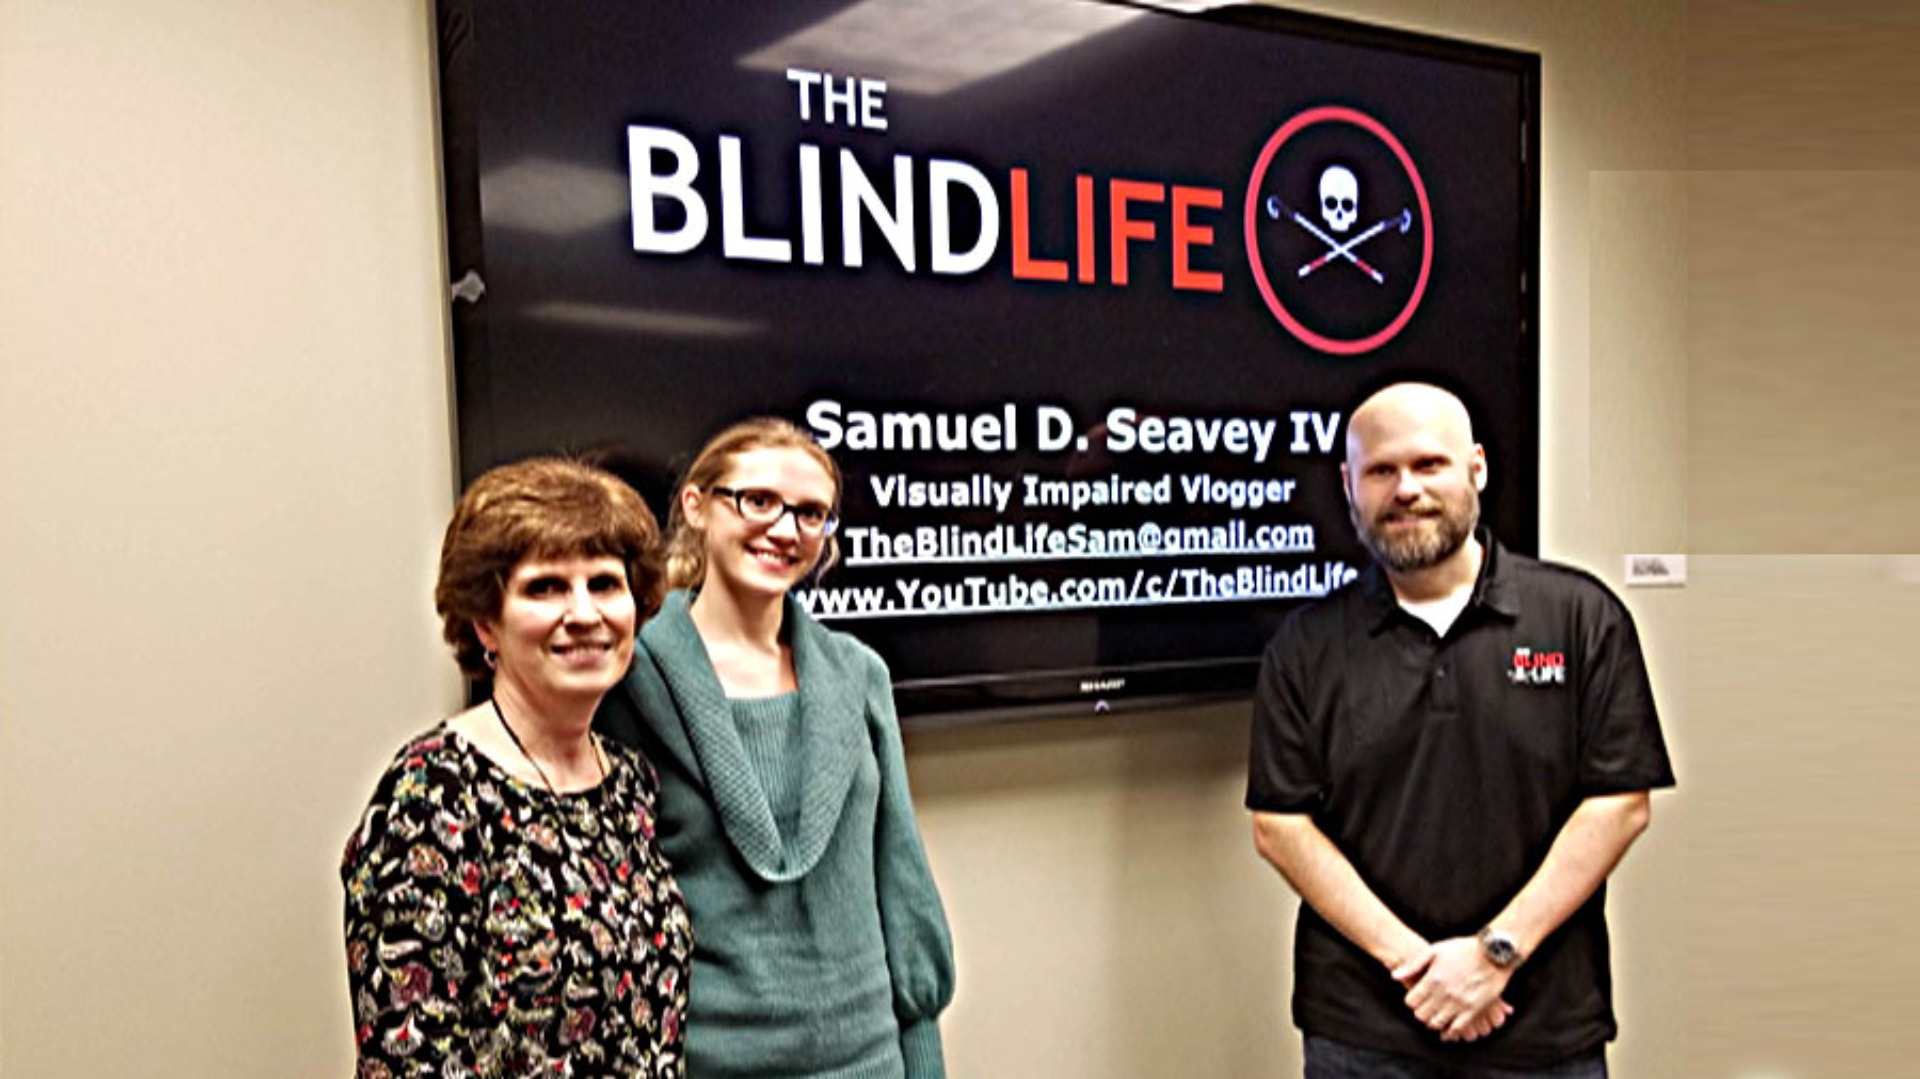 Sam Seavey in front of The Blind Life Poster  at a Speaking Engagement